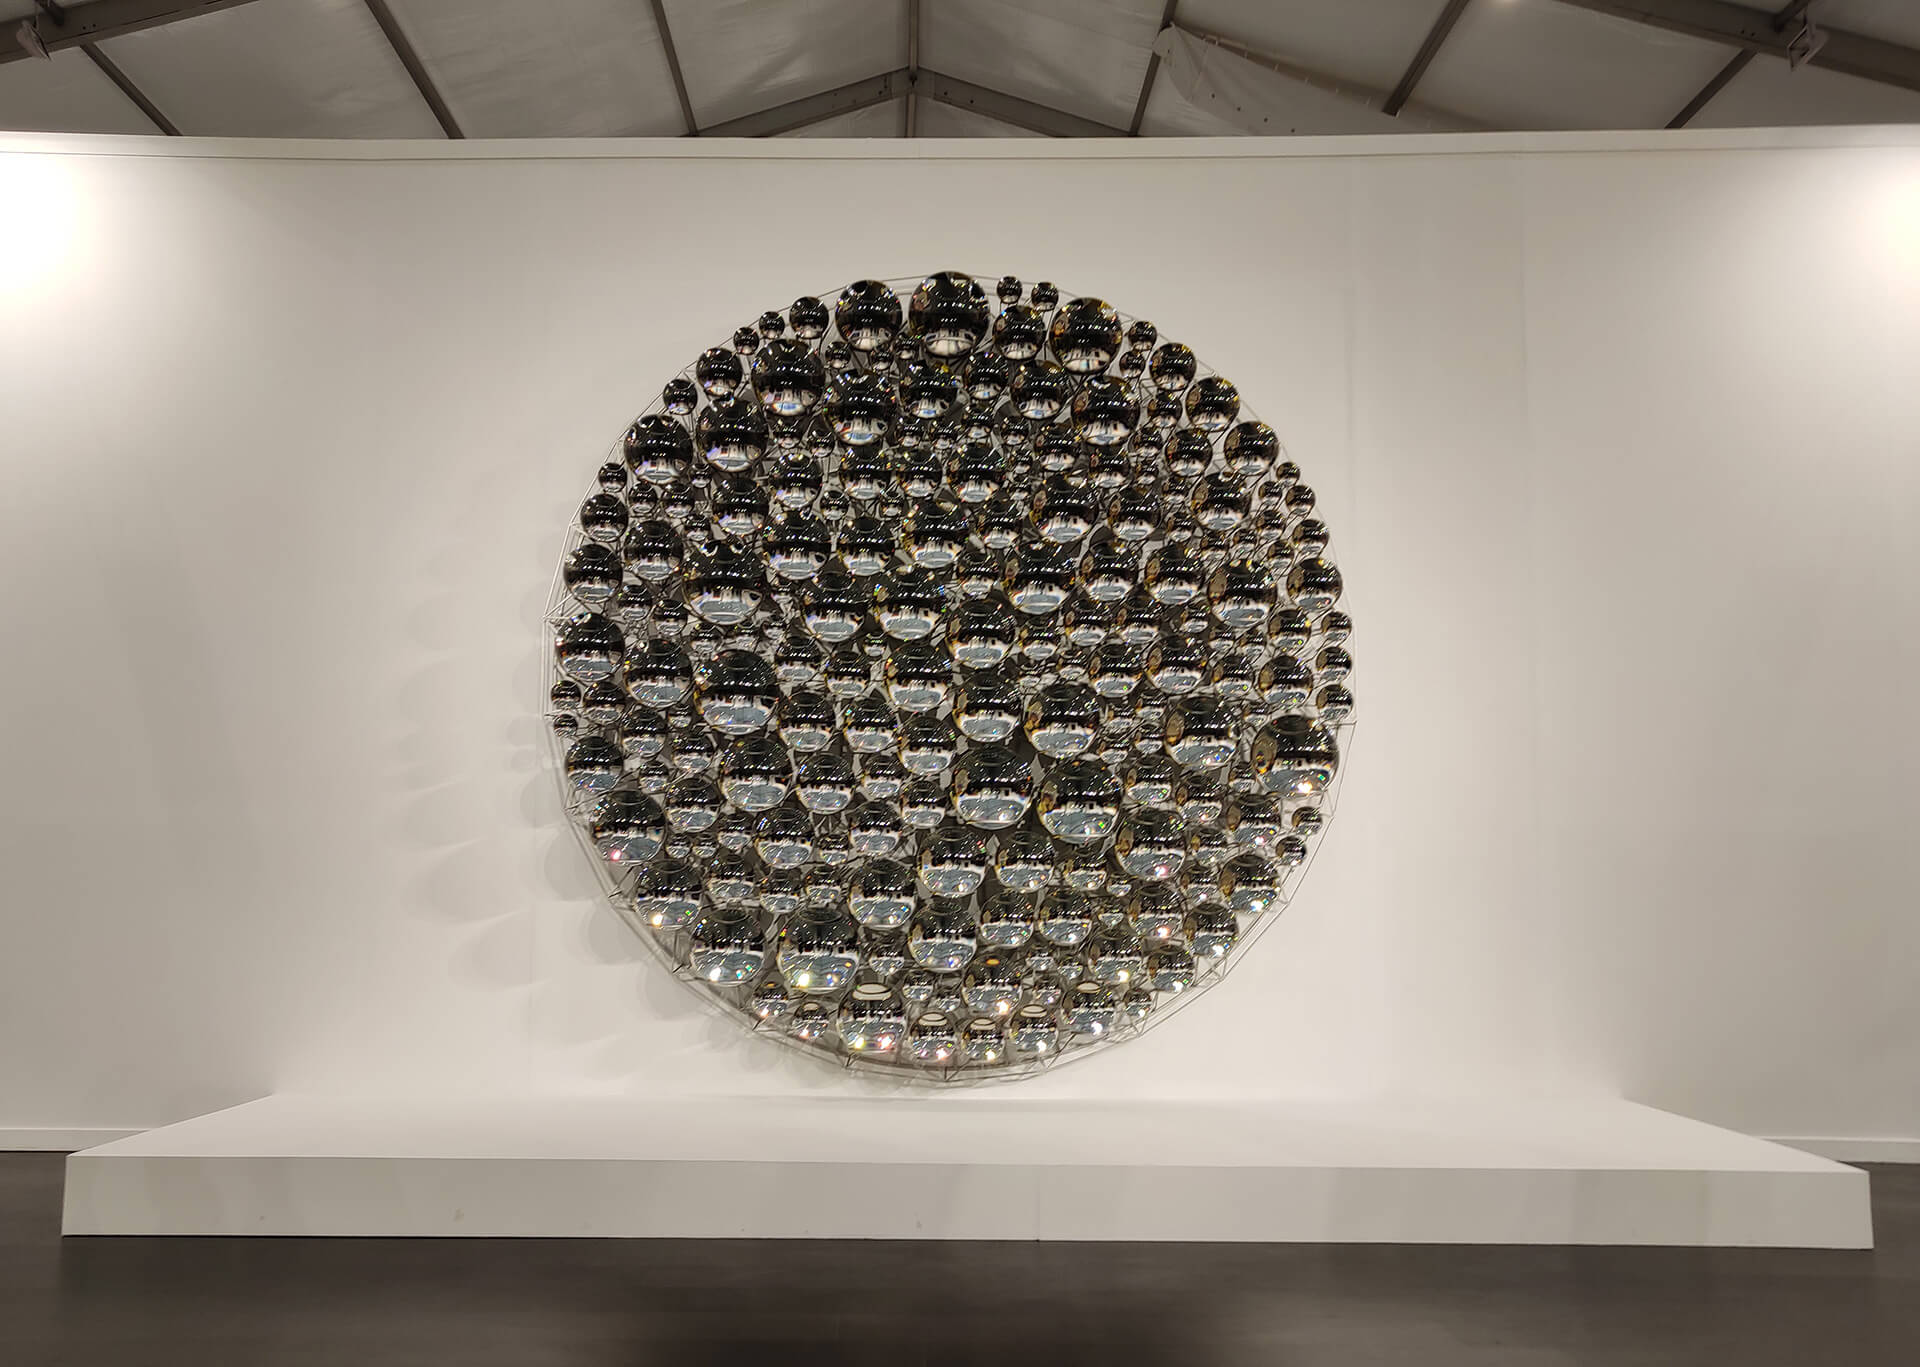 An artwork of Olafur Eliasson presented by Berlin-based gallery neugerriemschneide at the India Art Fair 2020, New Delhi | Olafur Eliasson | 10 trends in 10 years | India Art Fair | STIRworld